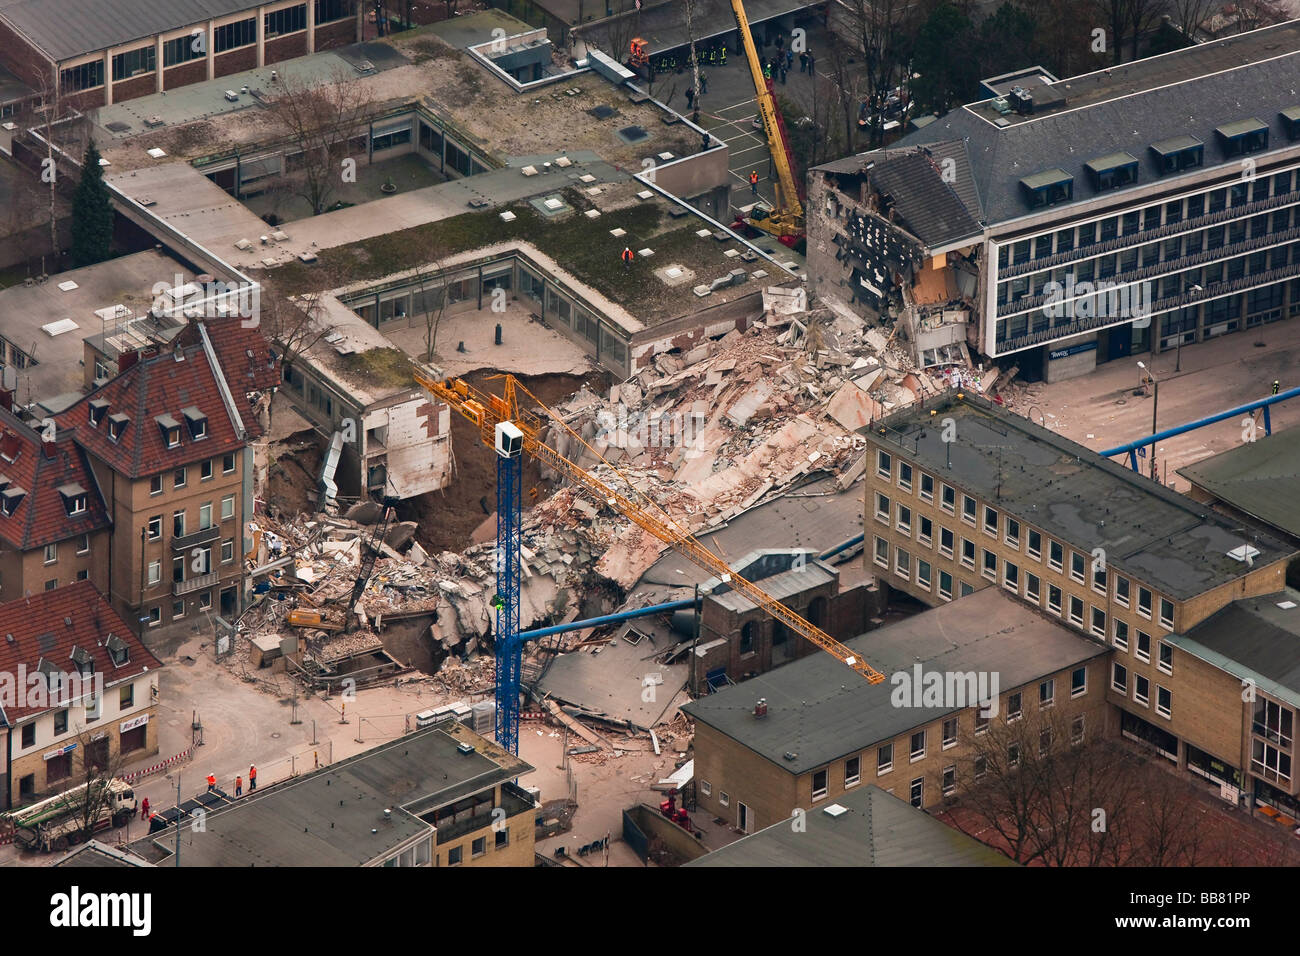 Aerial view, collapse of the Historical Archive of the City of Cologne, Cologne, North Rhine-Westphalia, Germany, Stock Photo